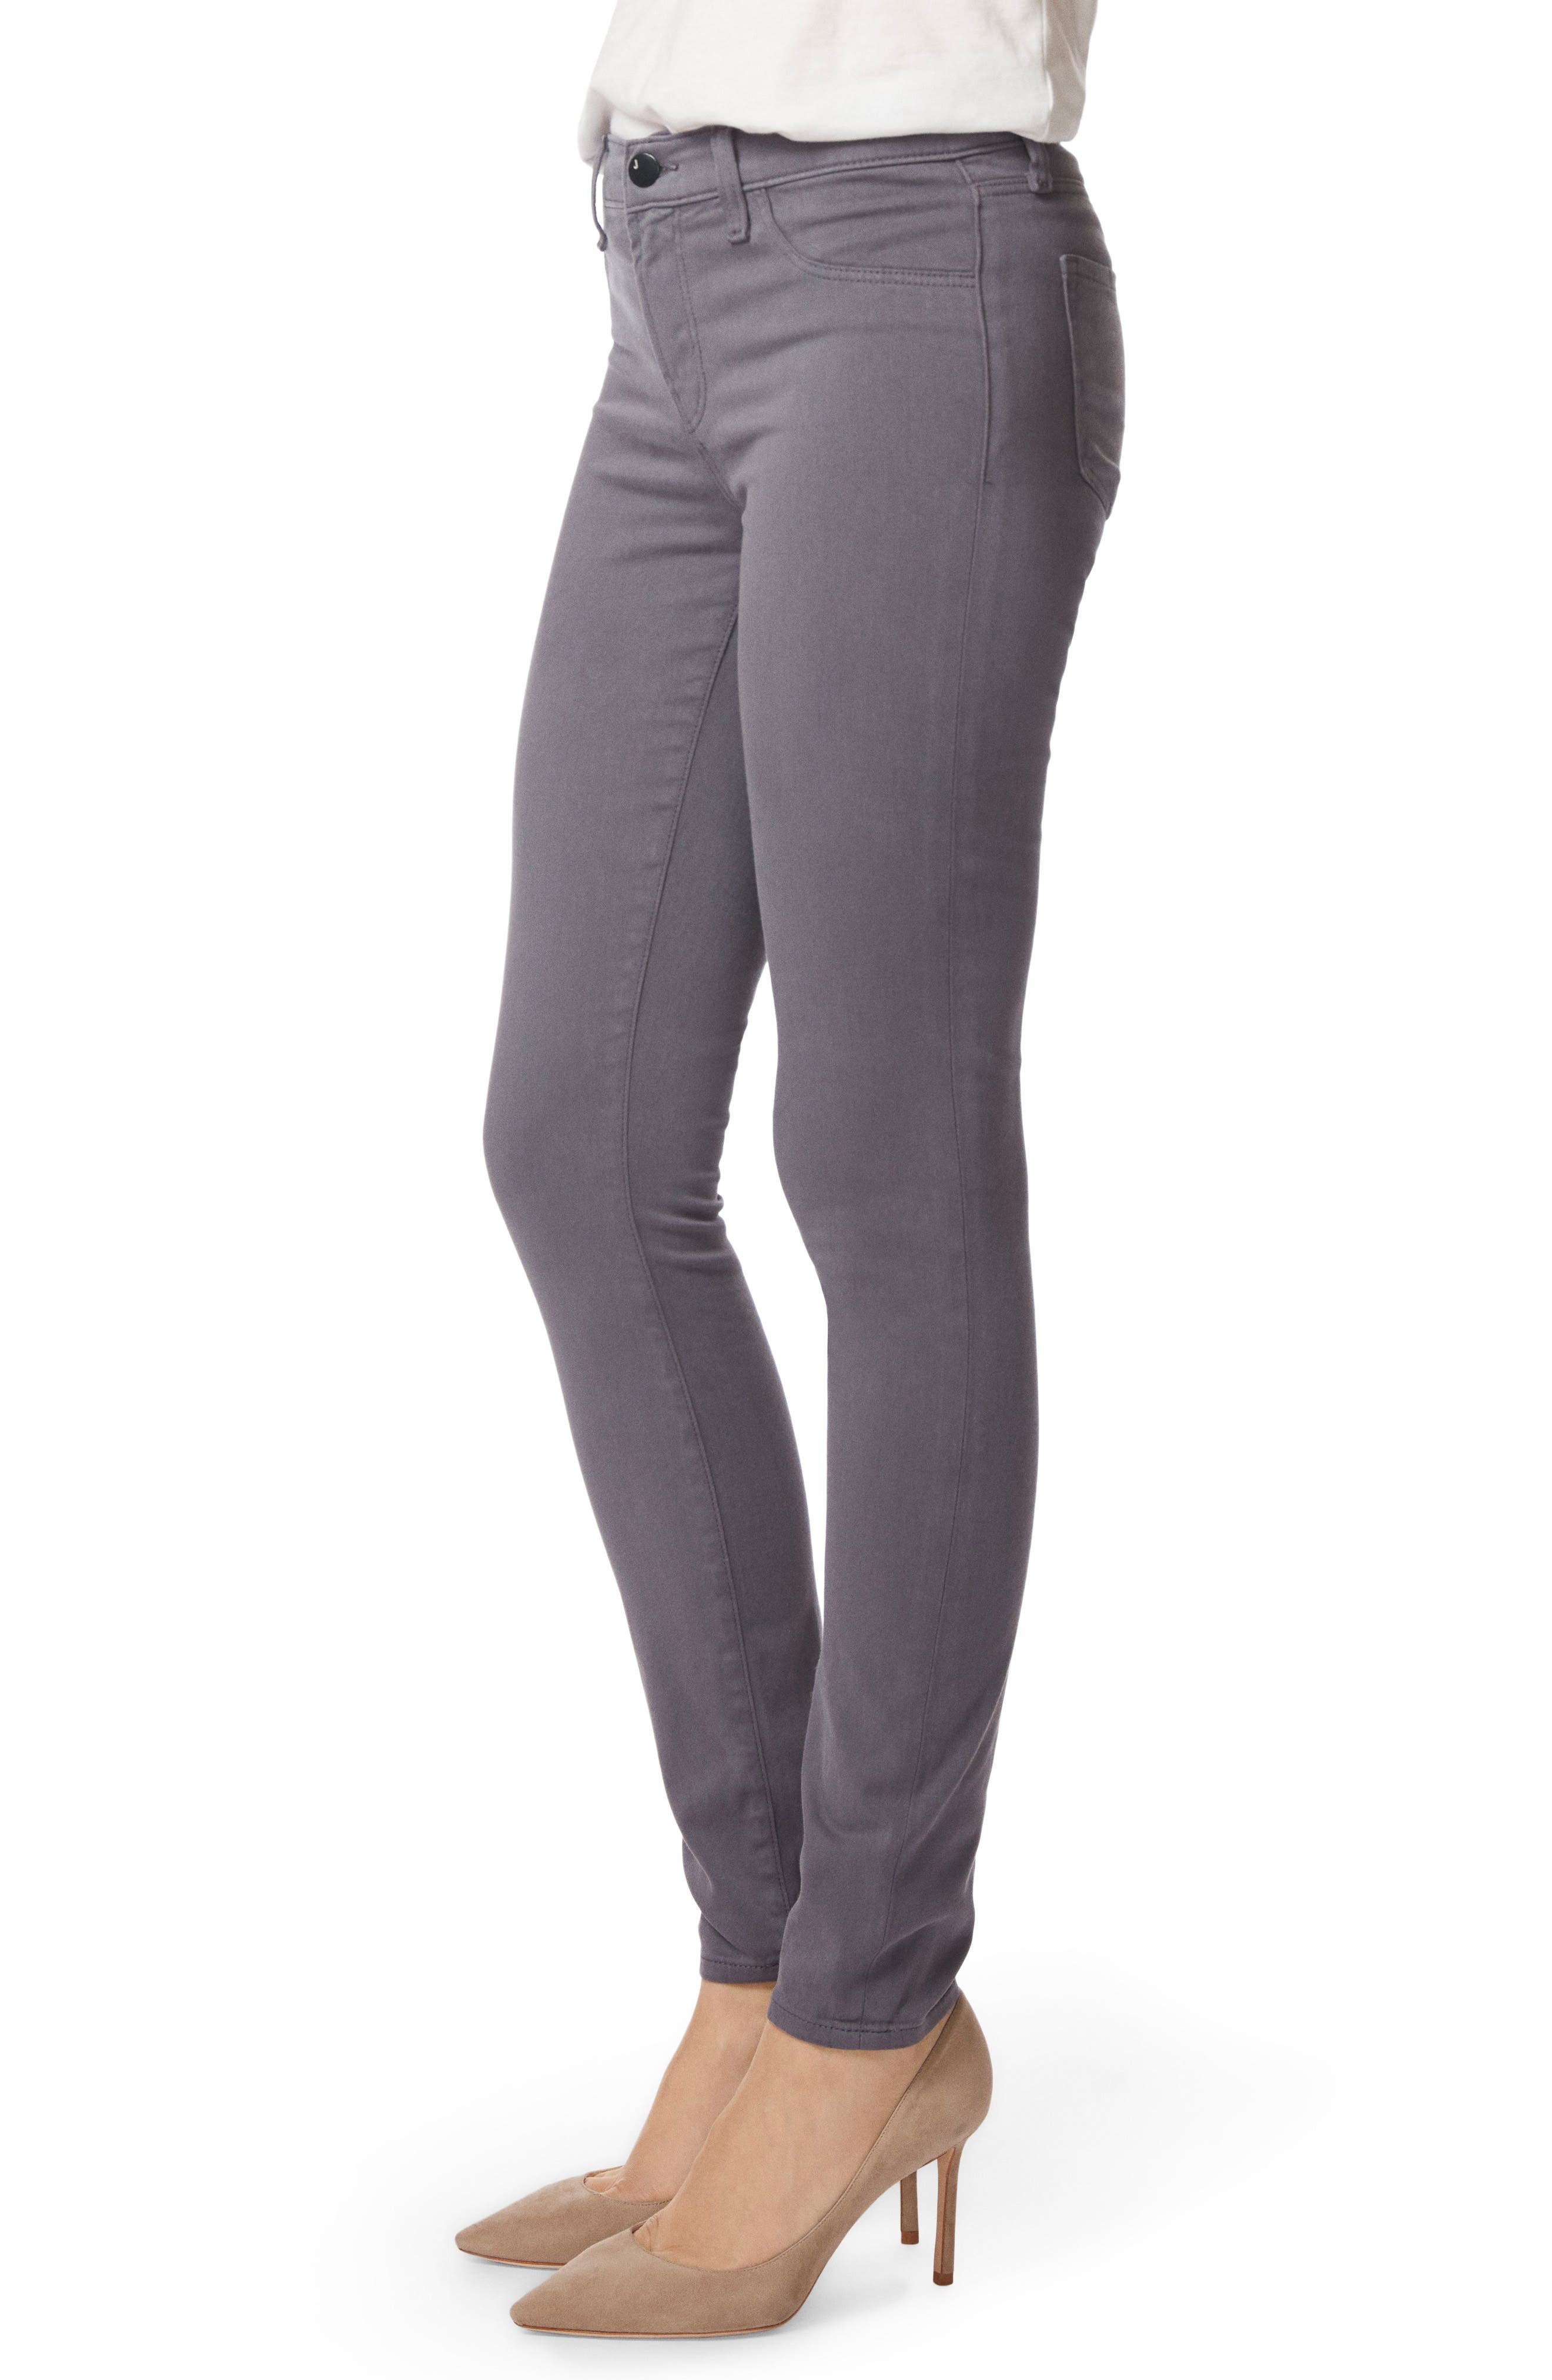 485 Mid Rise Skinny Jeans,                             Alternate thumbnail 3, color,                             VOLCANIC ASH